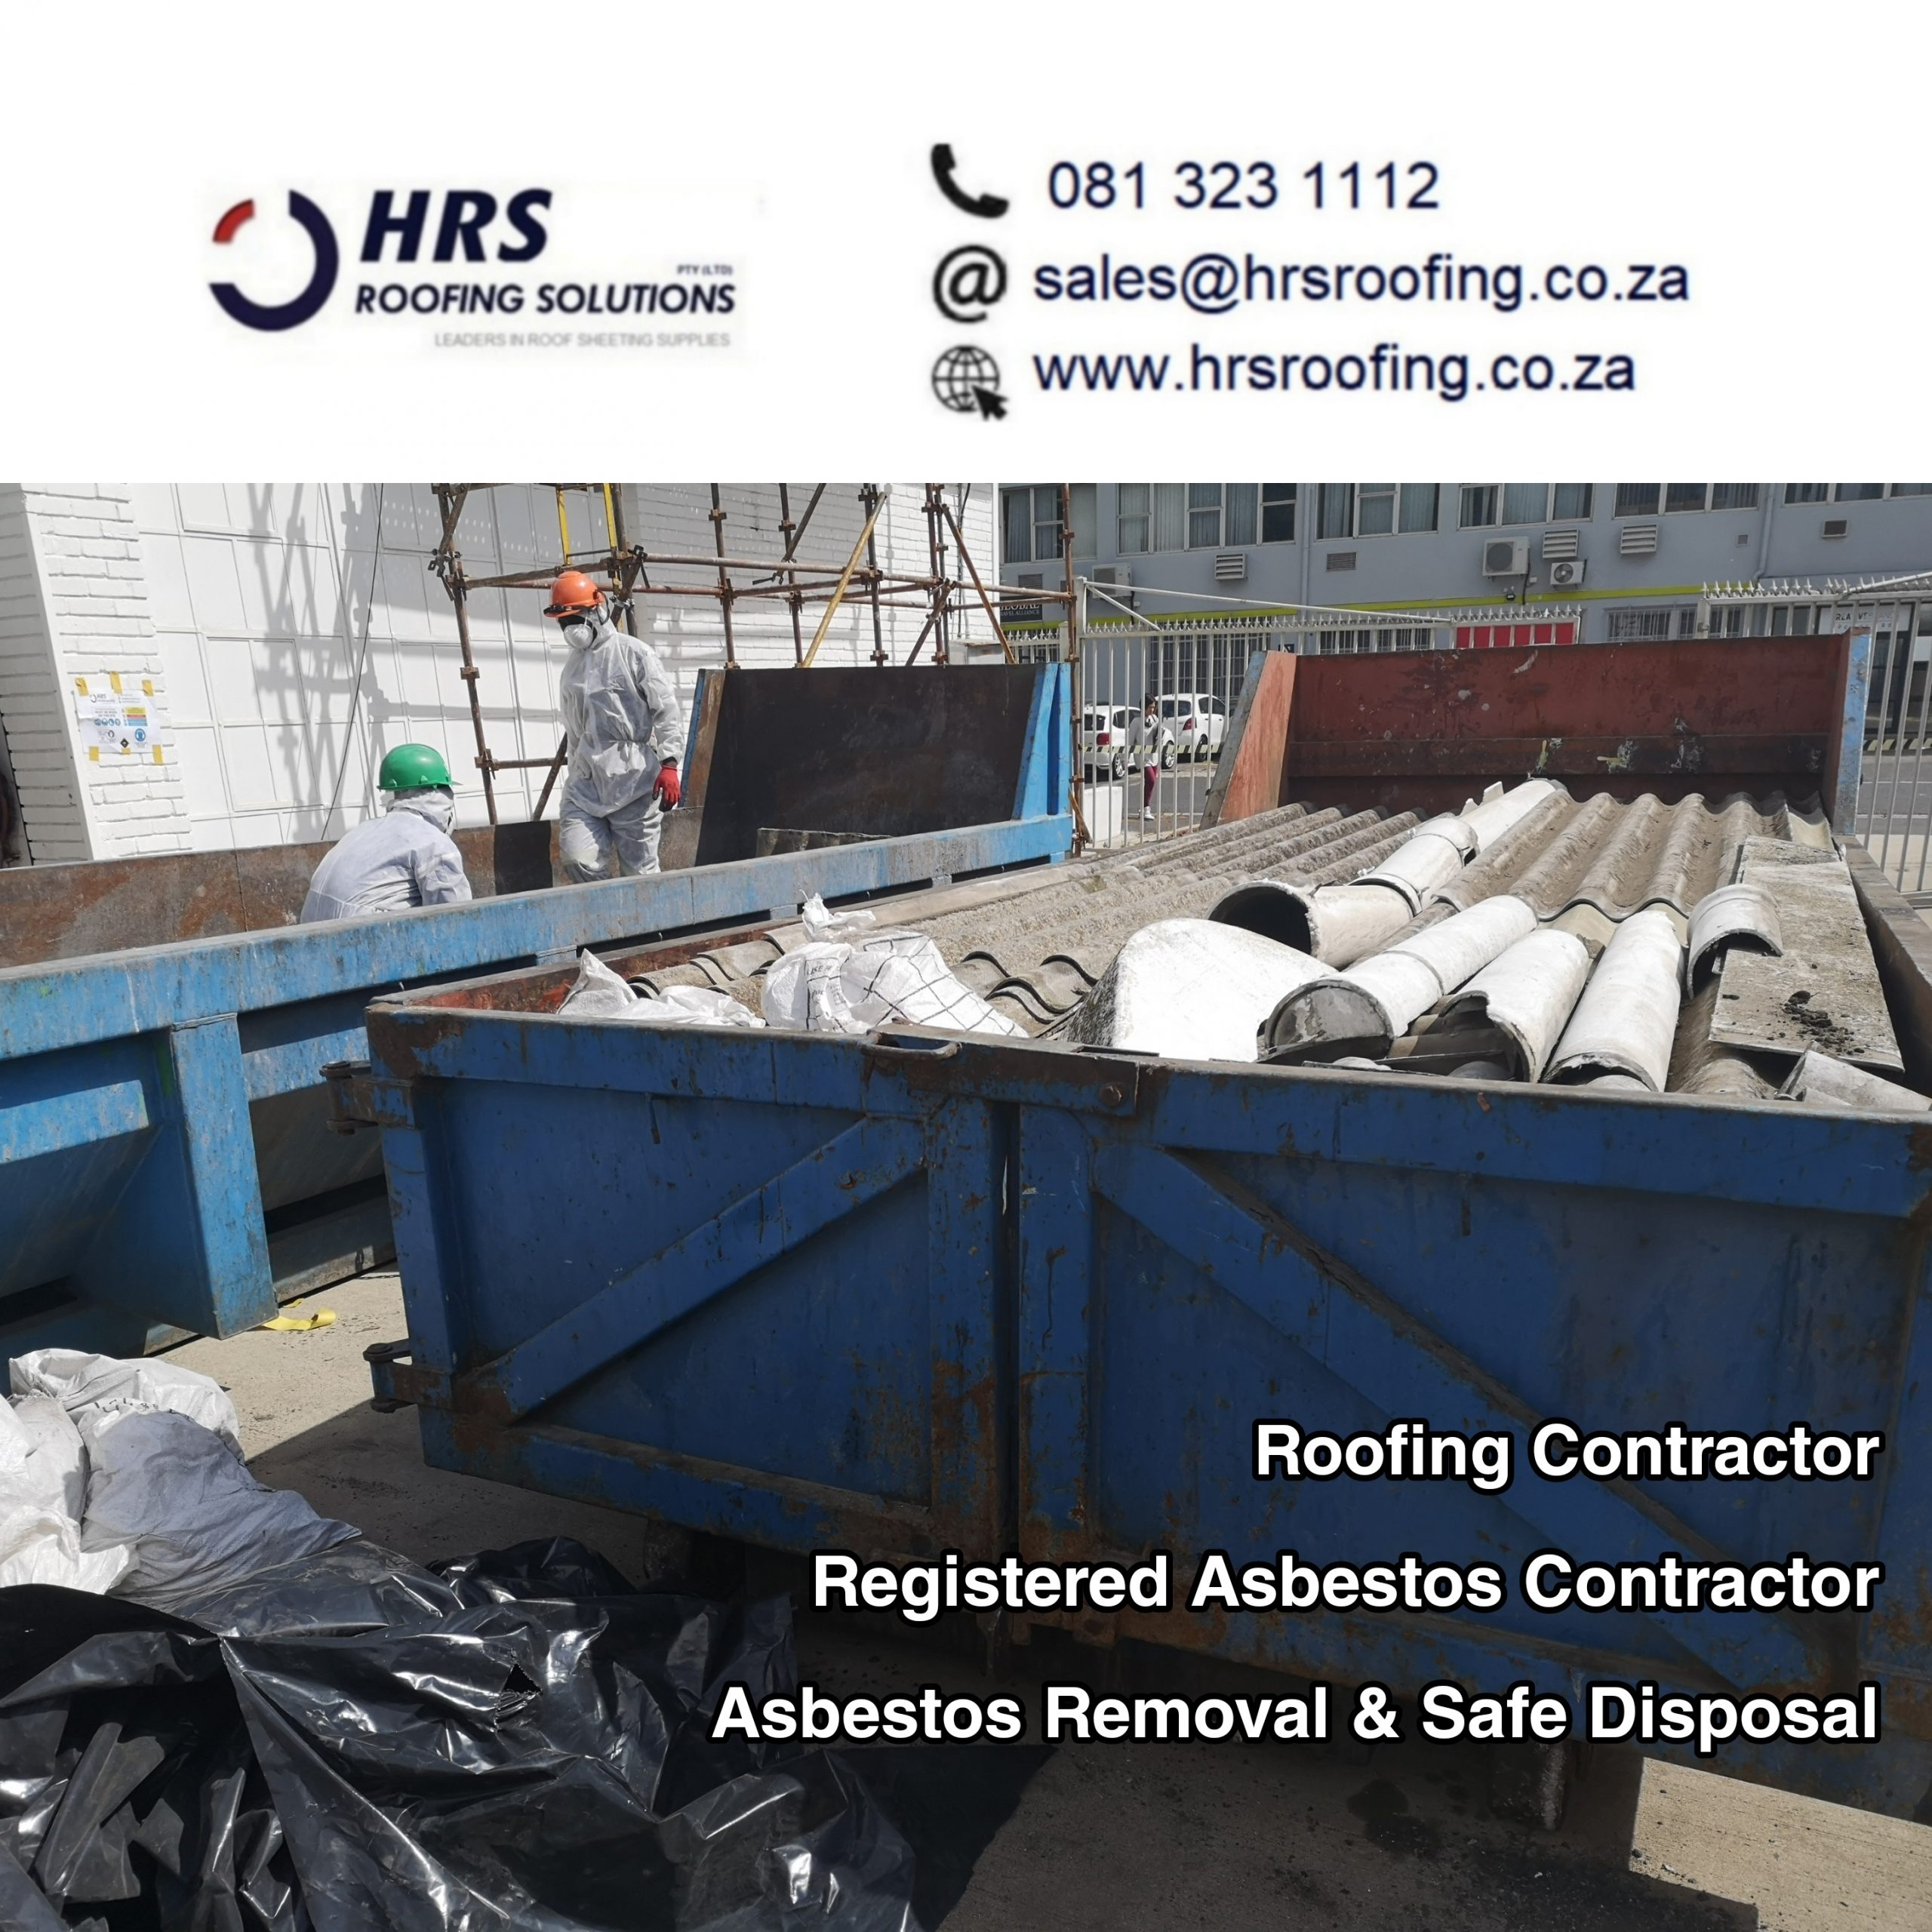 hrs roofing solutions registered Asbestos Contractor cape Town Asbestos disposal scaled - Roofing Gallery